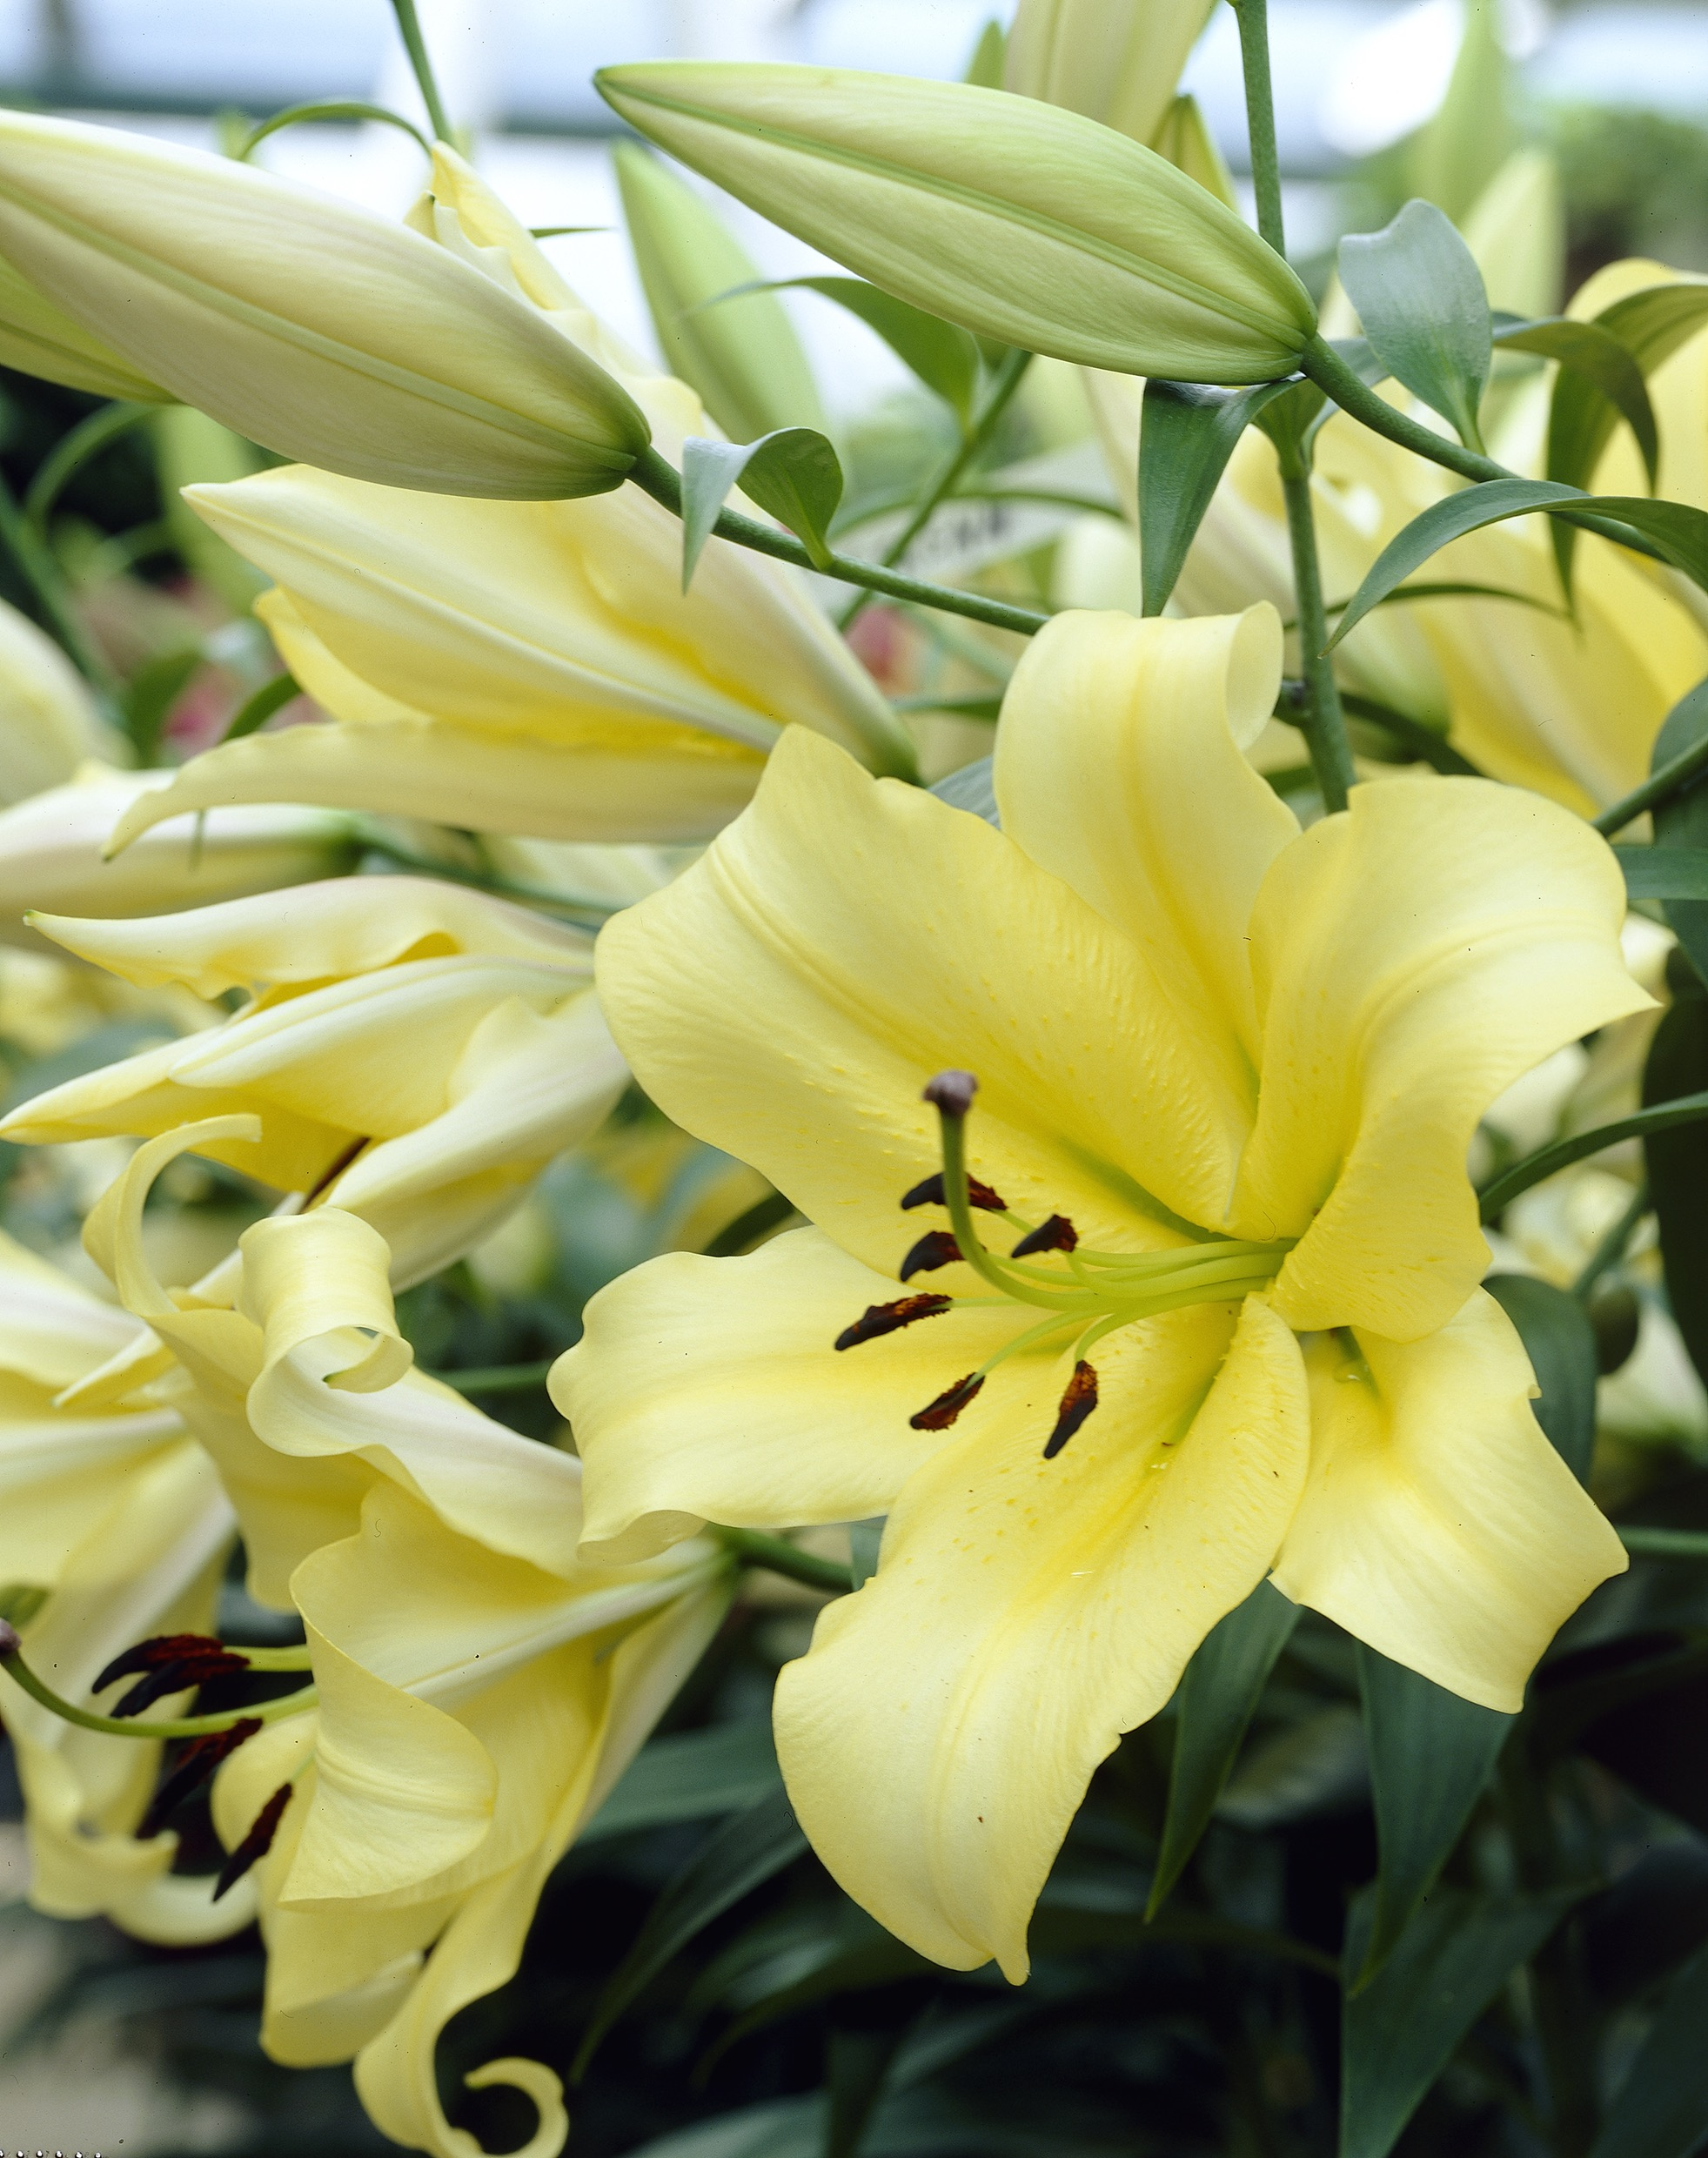 yelloween fragrant OT lily